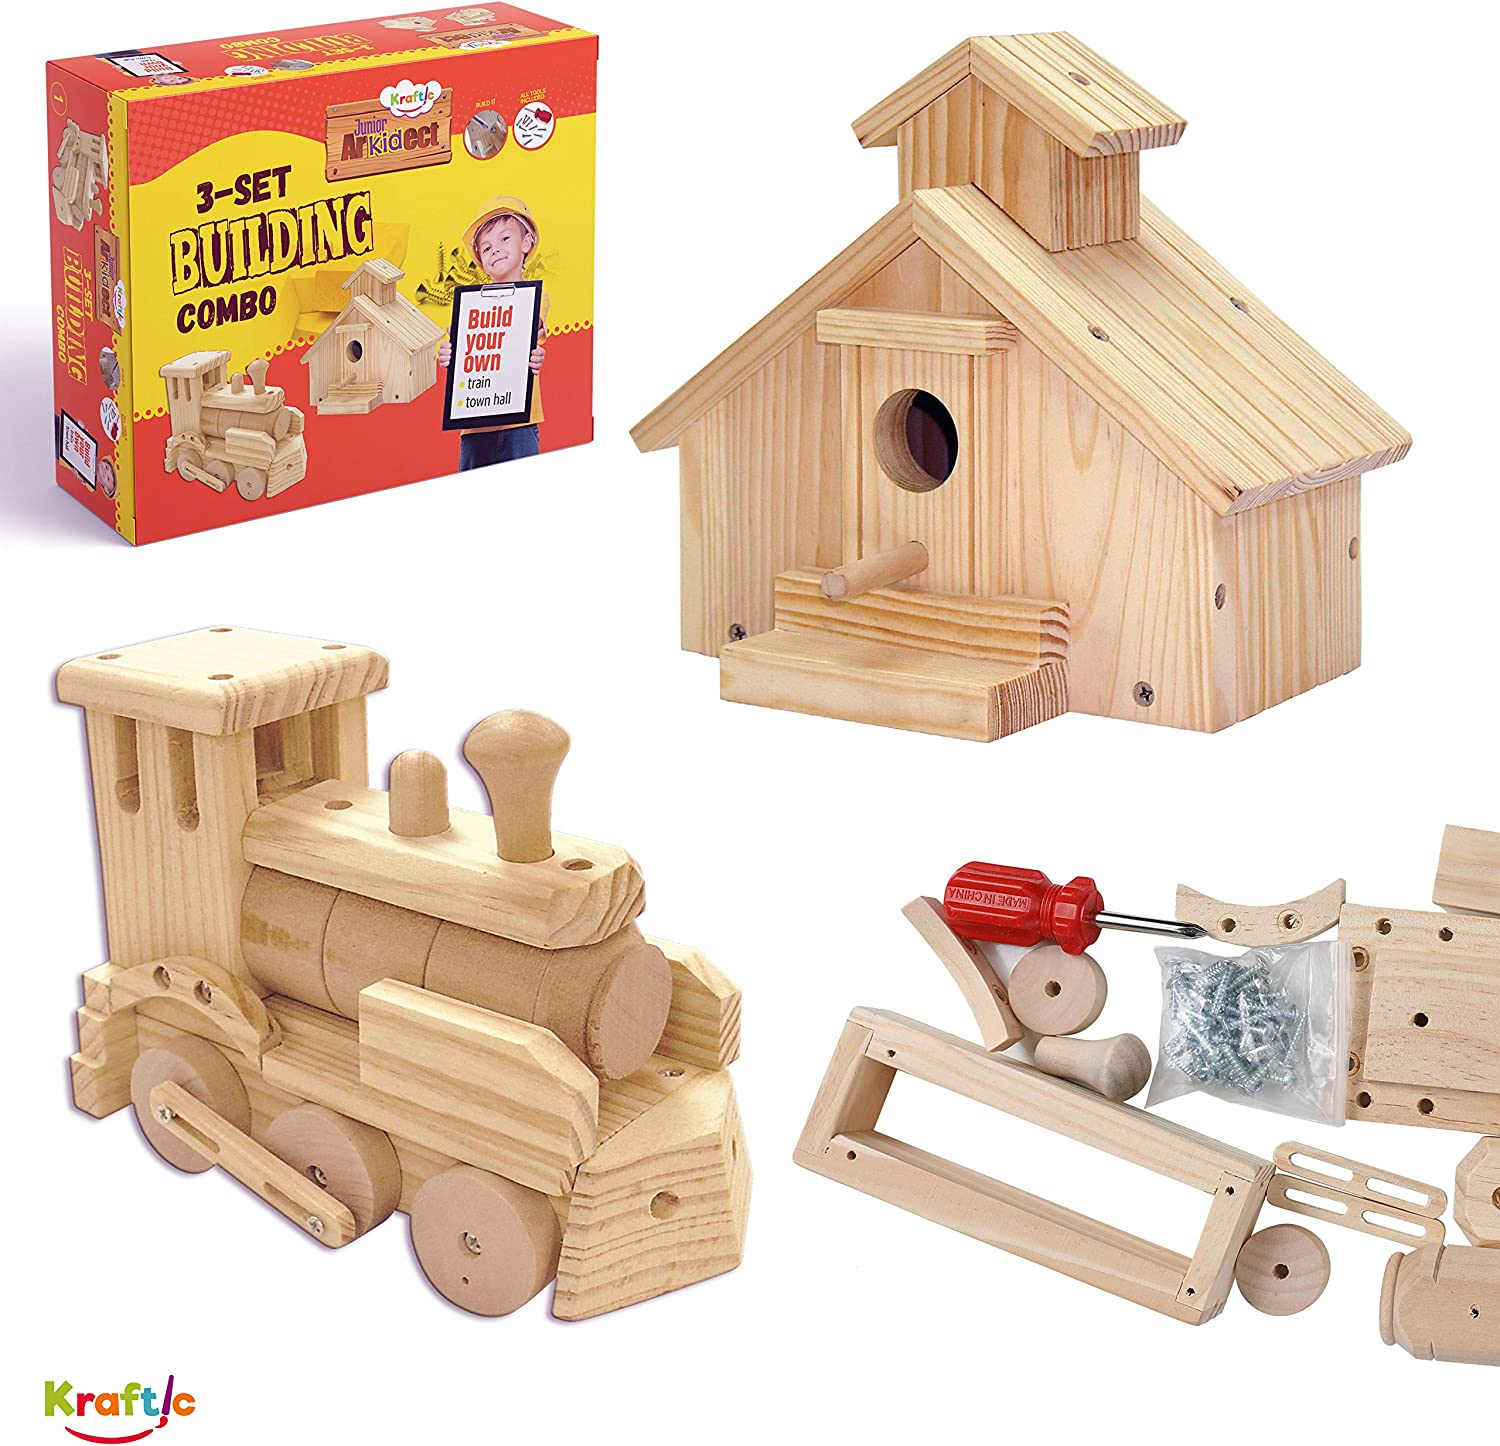 Kraftic Woodworking Building Kit For Kids With 2 Diy Carpentry Wood Toy Projects Town Hall And Train Wood Amazon Canada